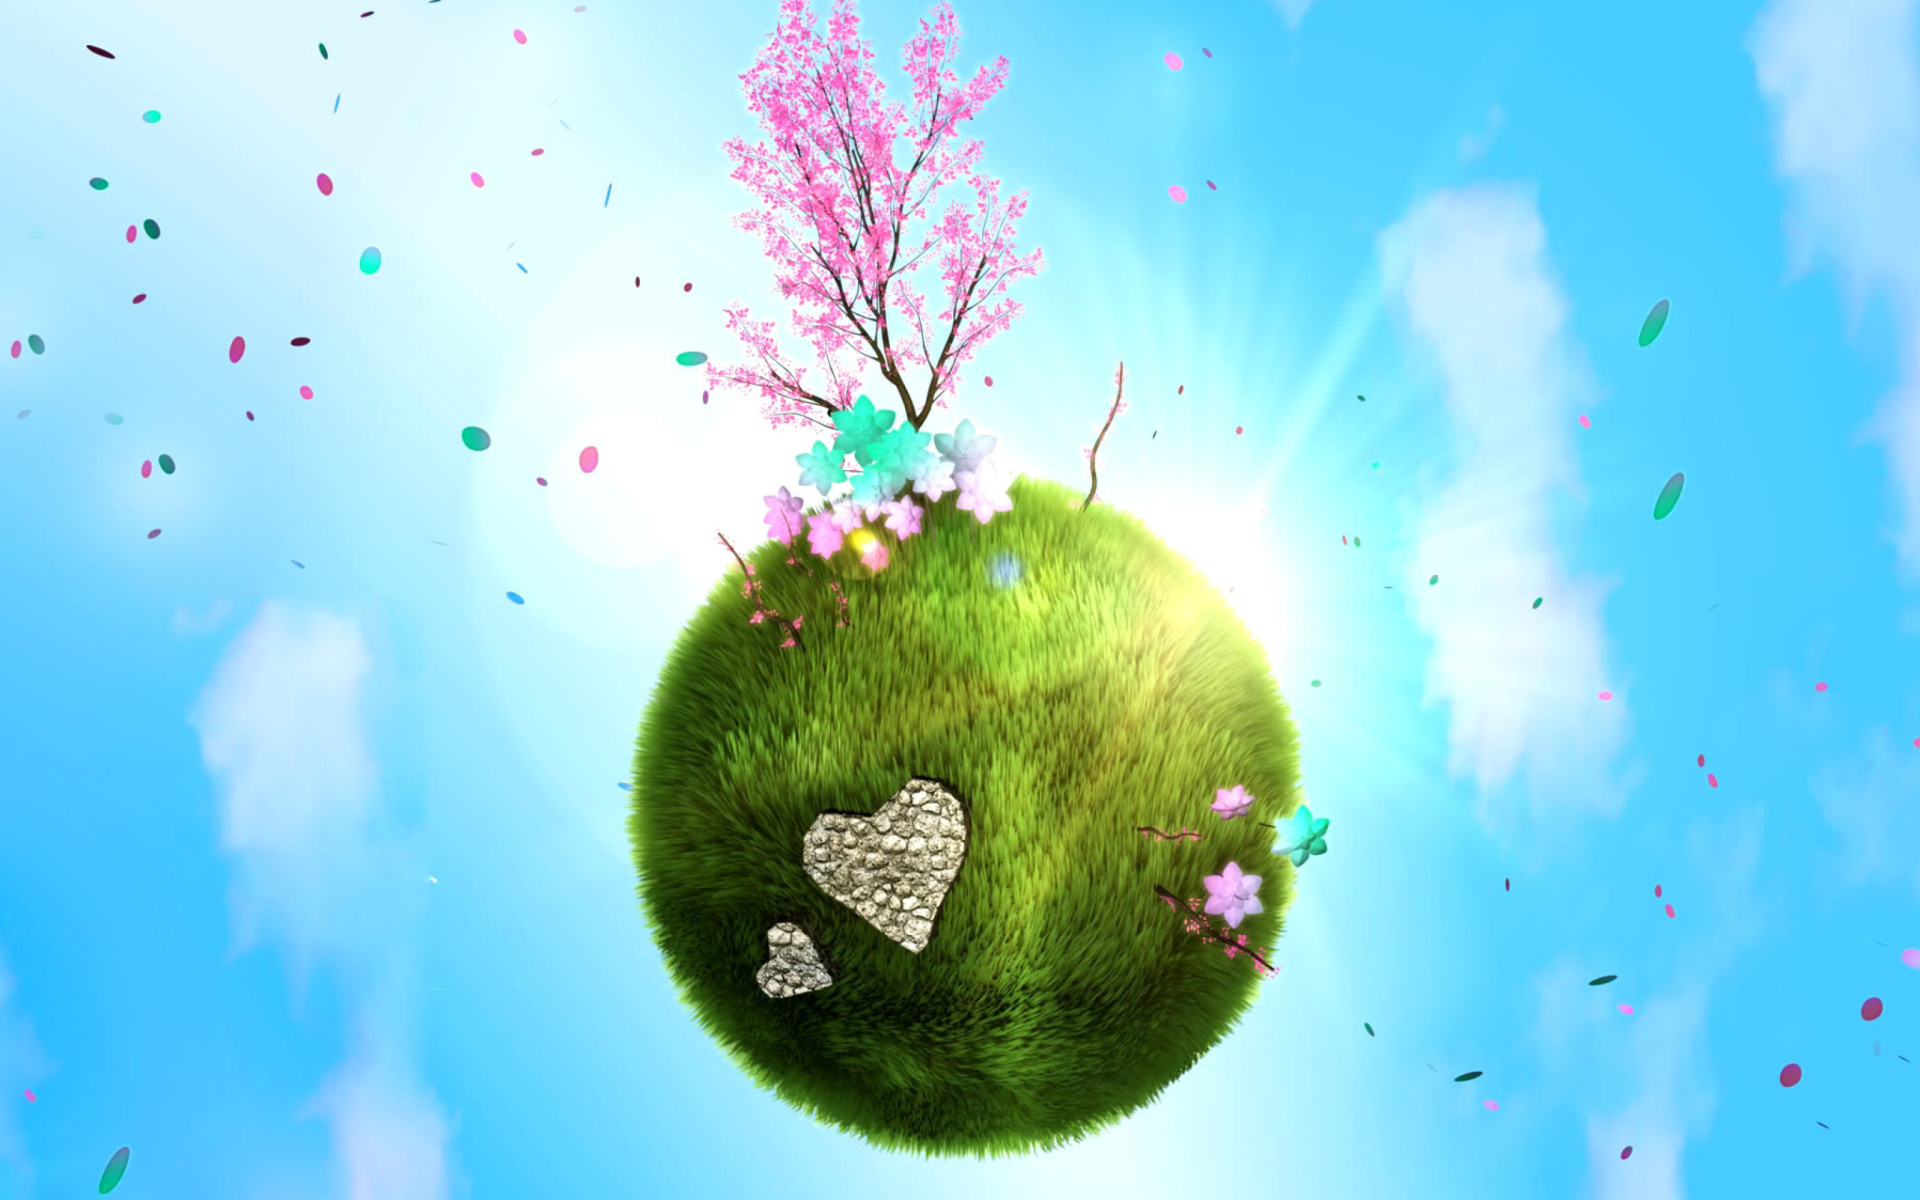 earth day wallpapers pictures images